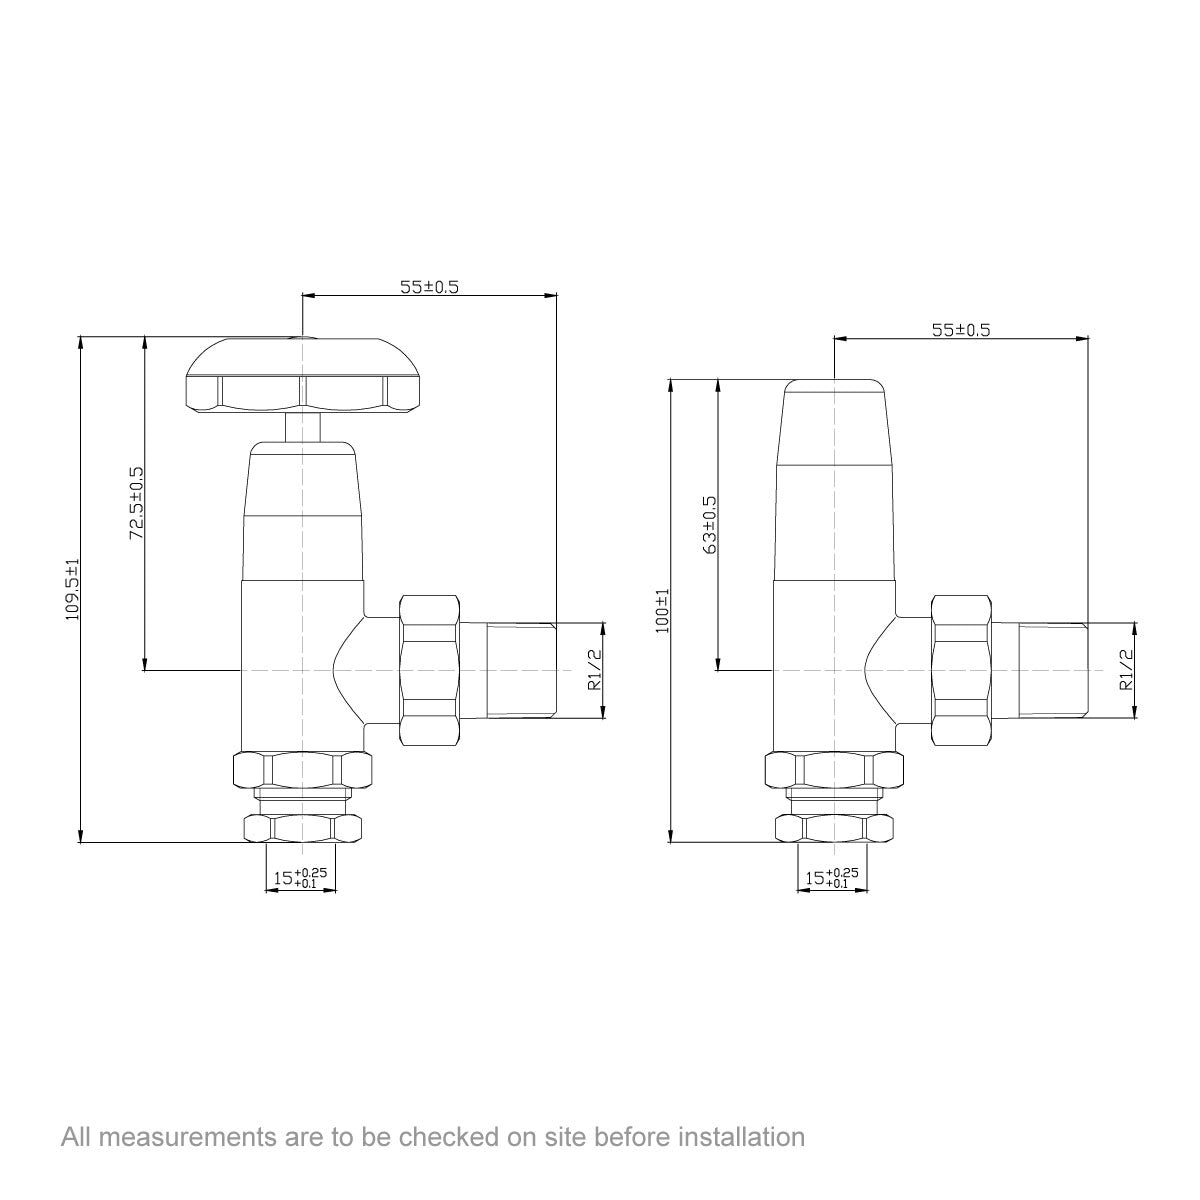 Dimensions for The Bath Co. Traditional angled radiator valves with white handle